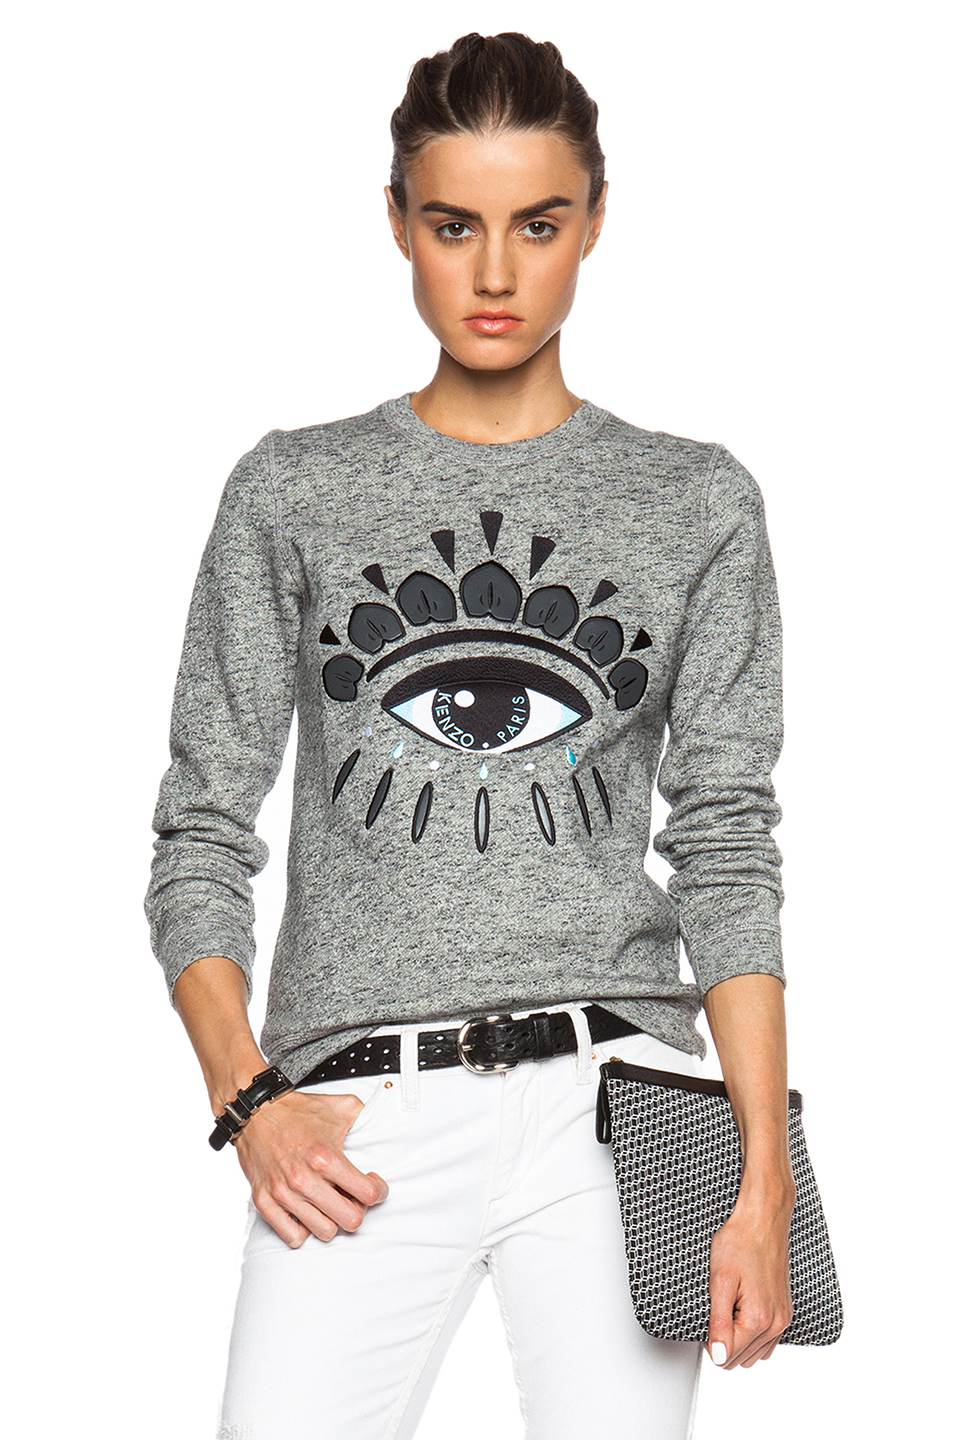 6acf541654f Gallery. Previously sold at: FORWARD · Women's Kenzo Eye